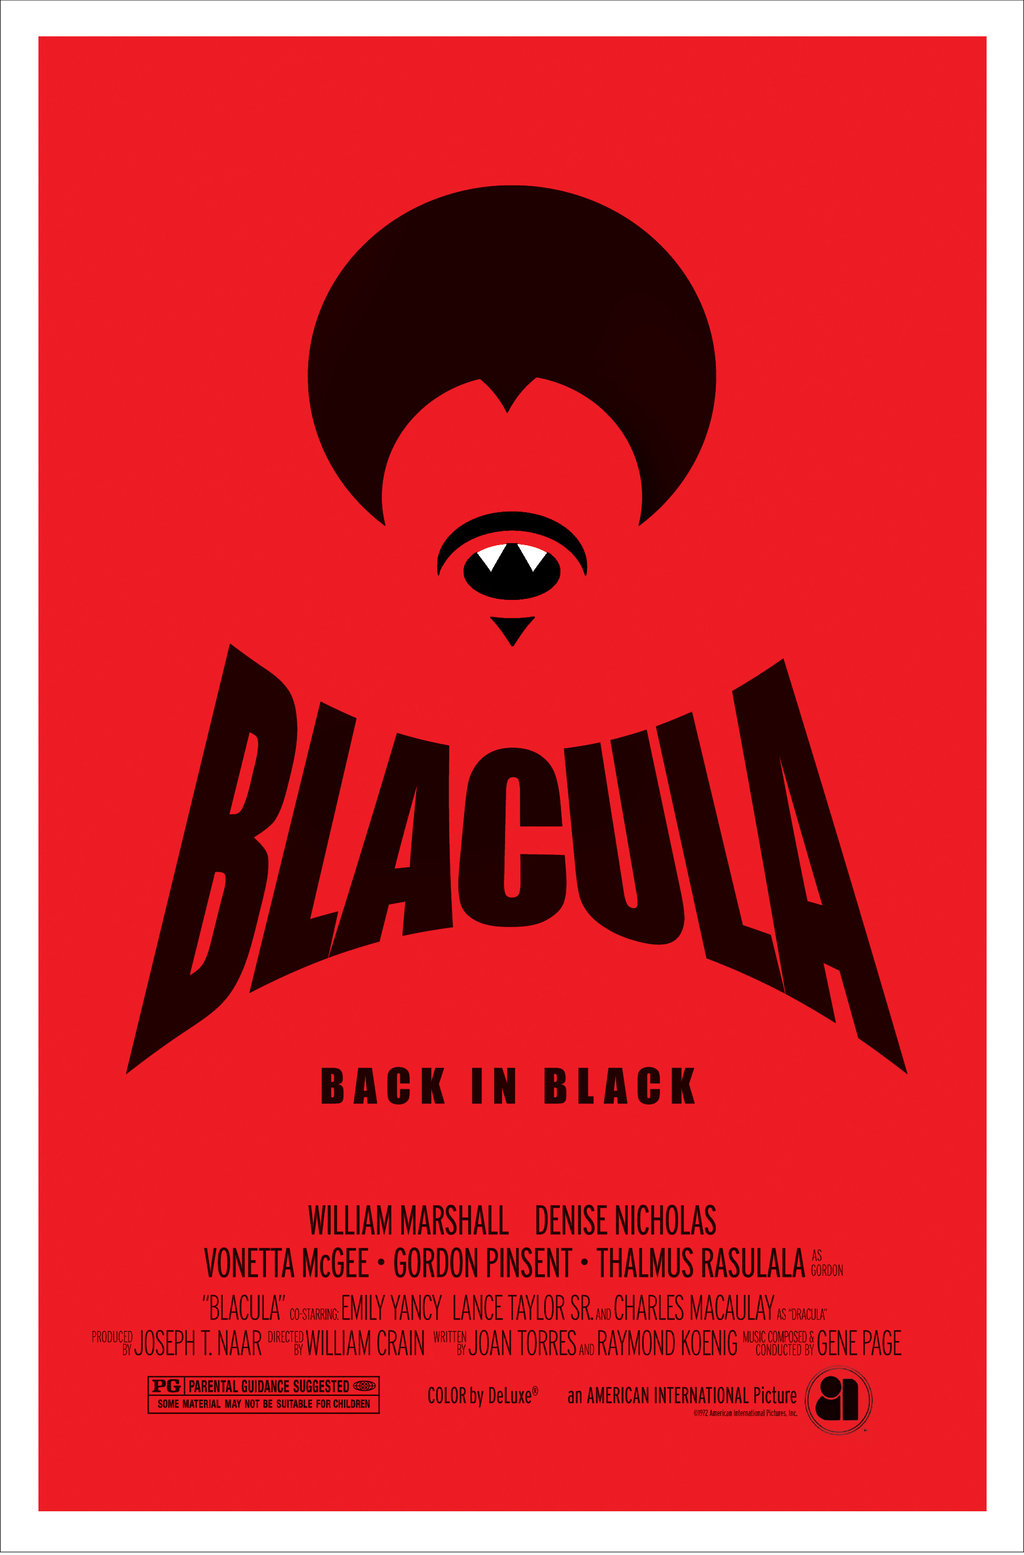 Best 44 Blacula Wallpaper on HipWallpaper Blacula Wallpaper 1024x1555